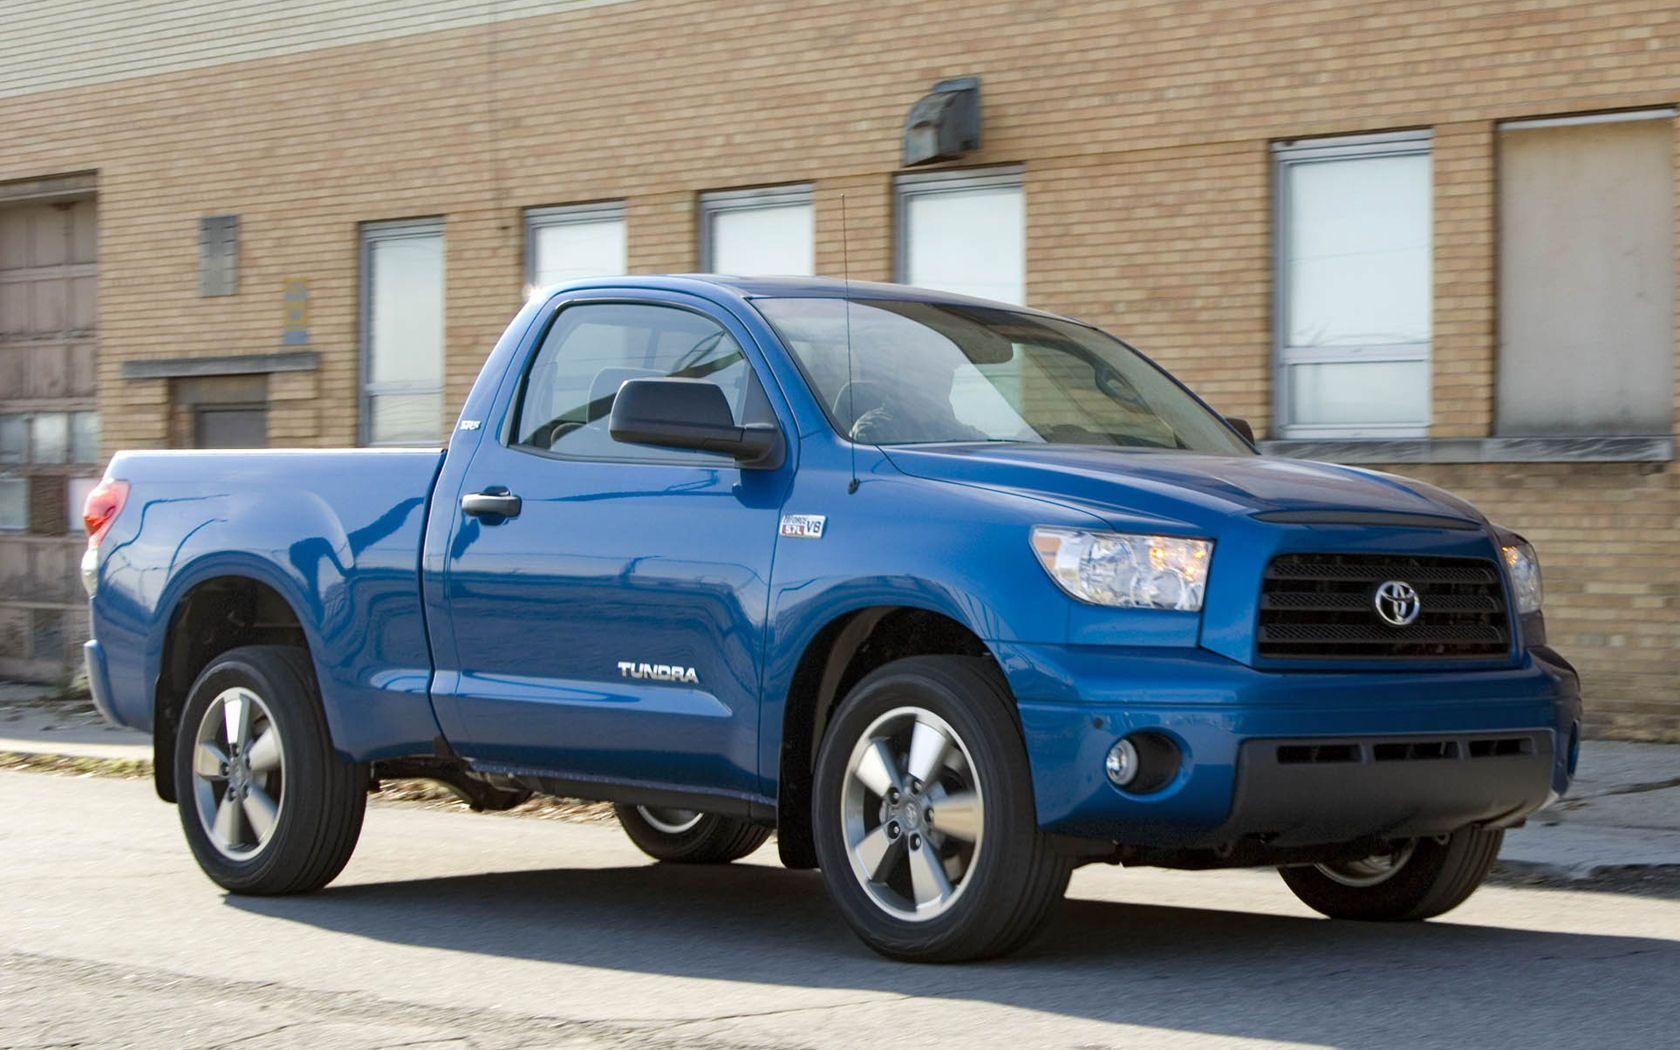 Toyota Tundra Regular, Double Cab, CrewMax V8 AWD